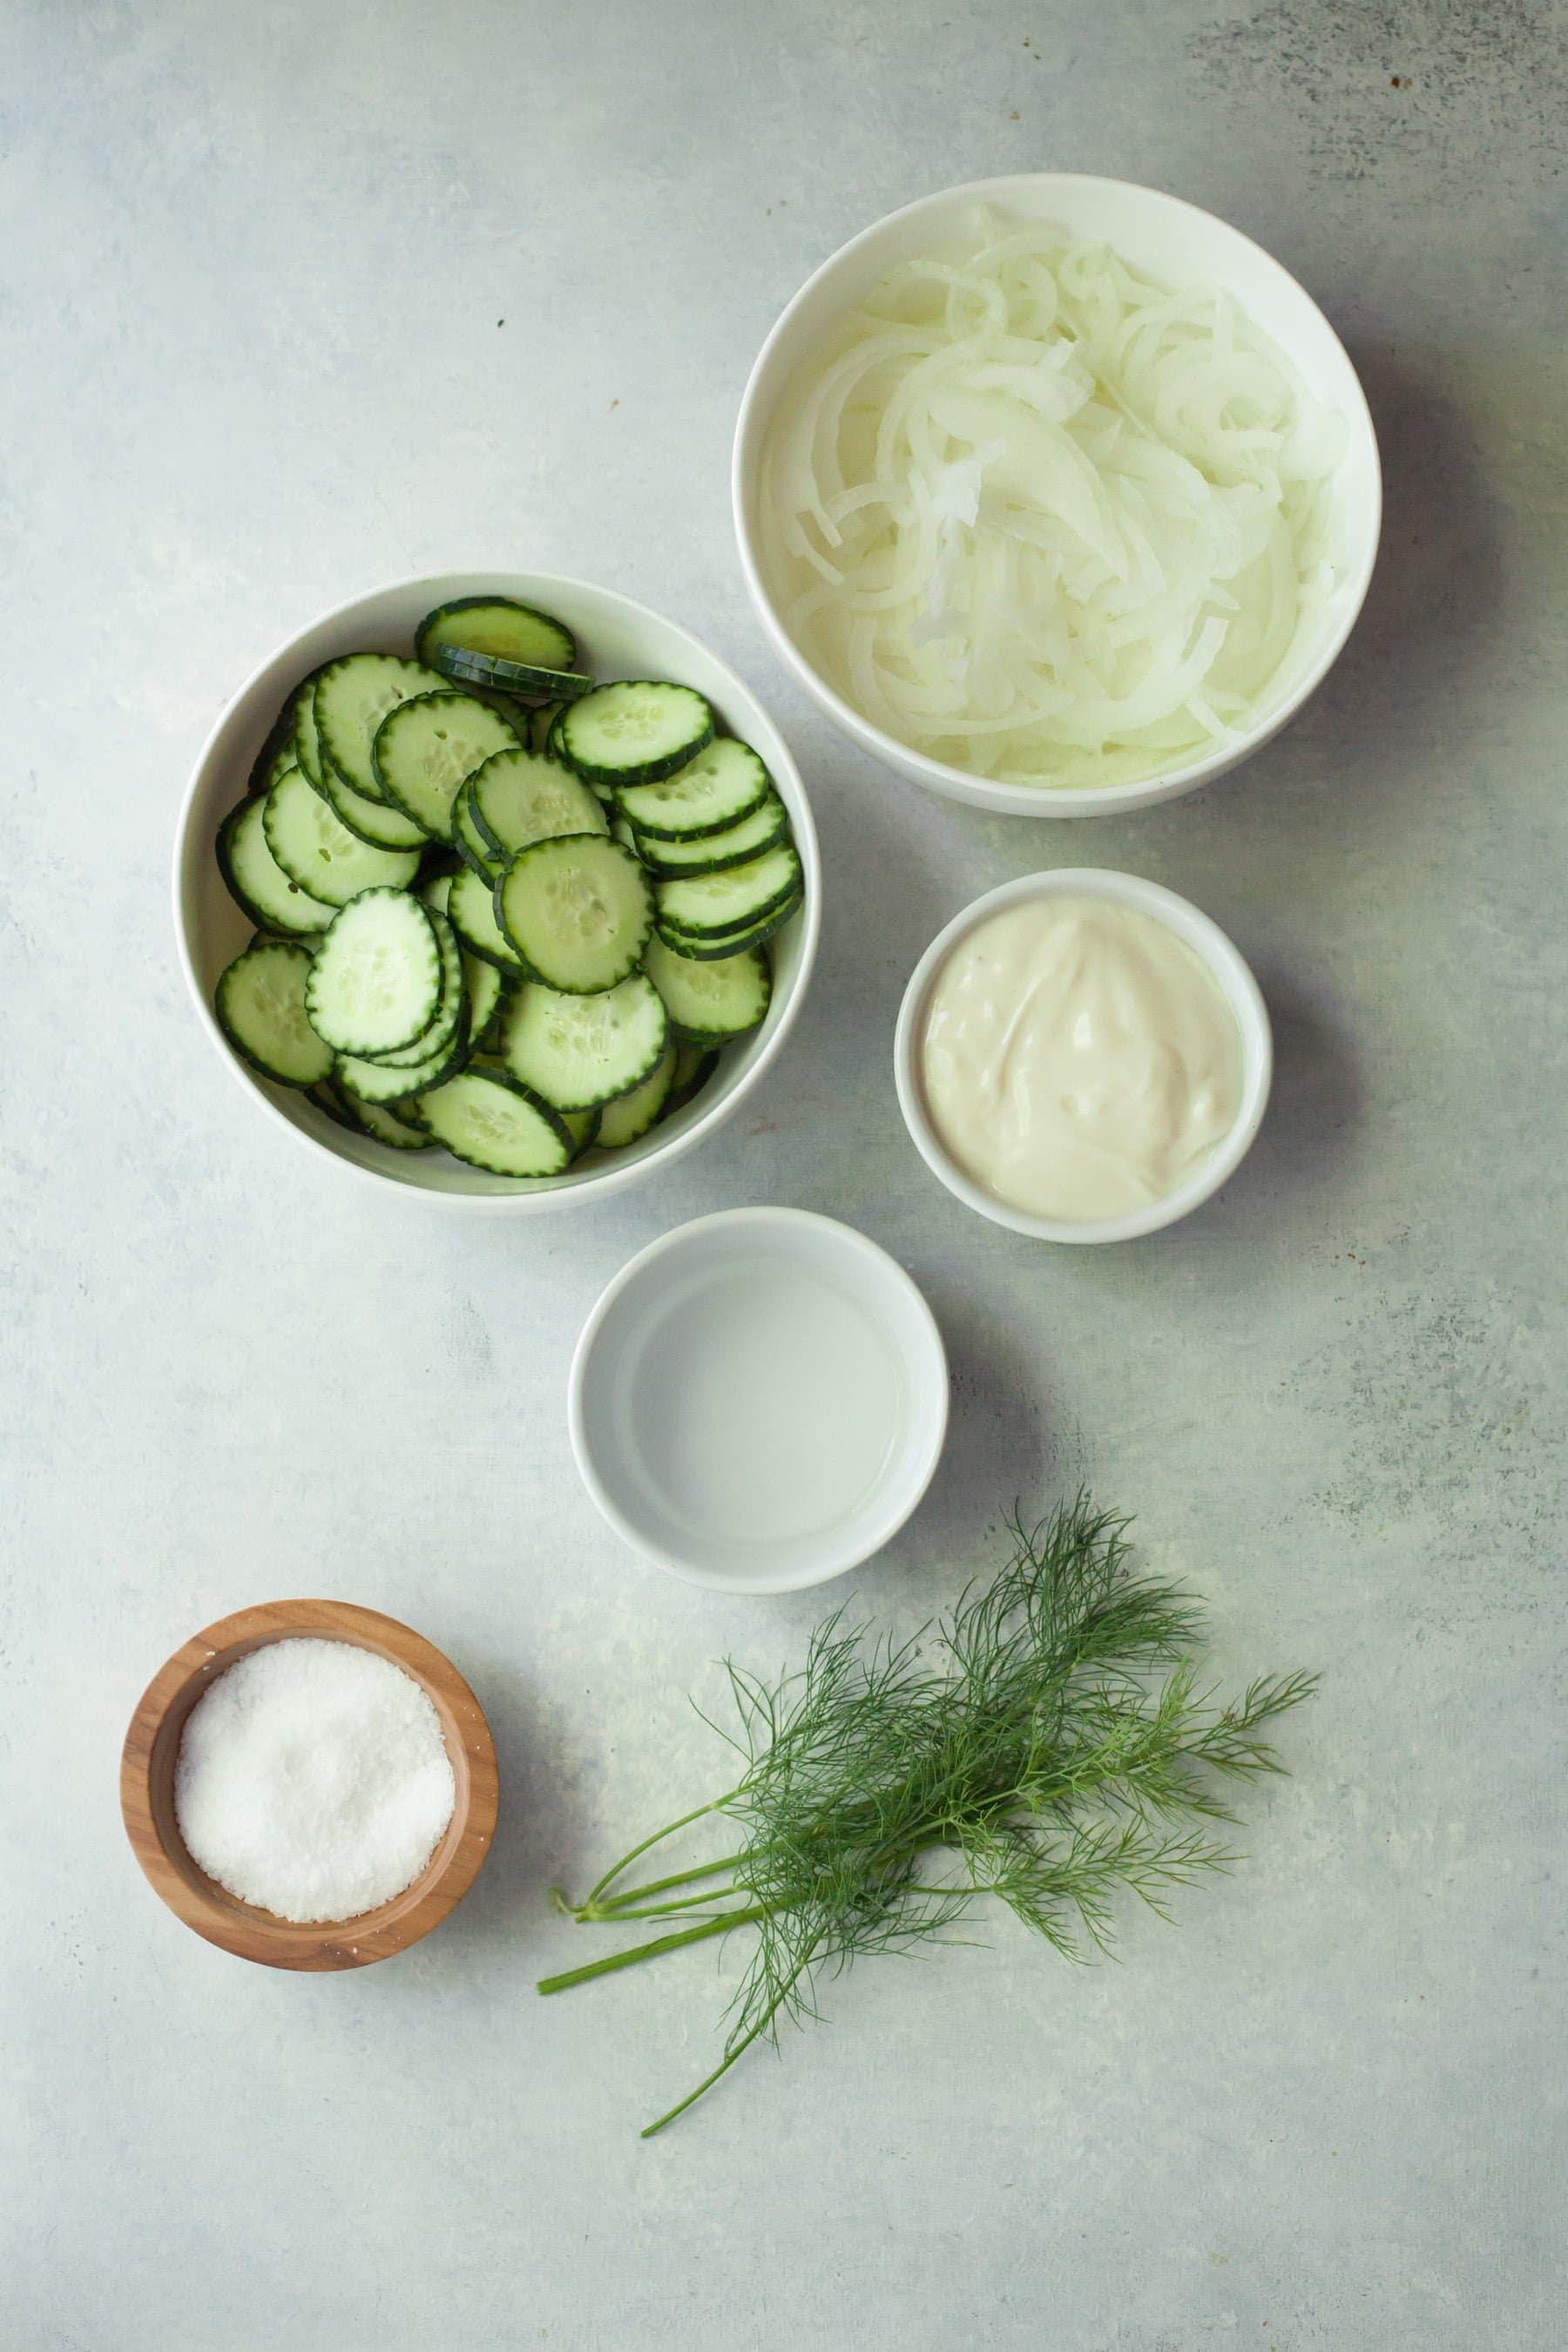 Overhead of six ingredients needed to make cucumber onion salad in bowls on a counter.